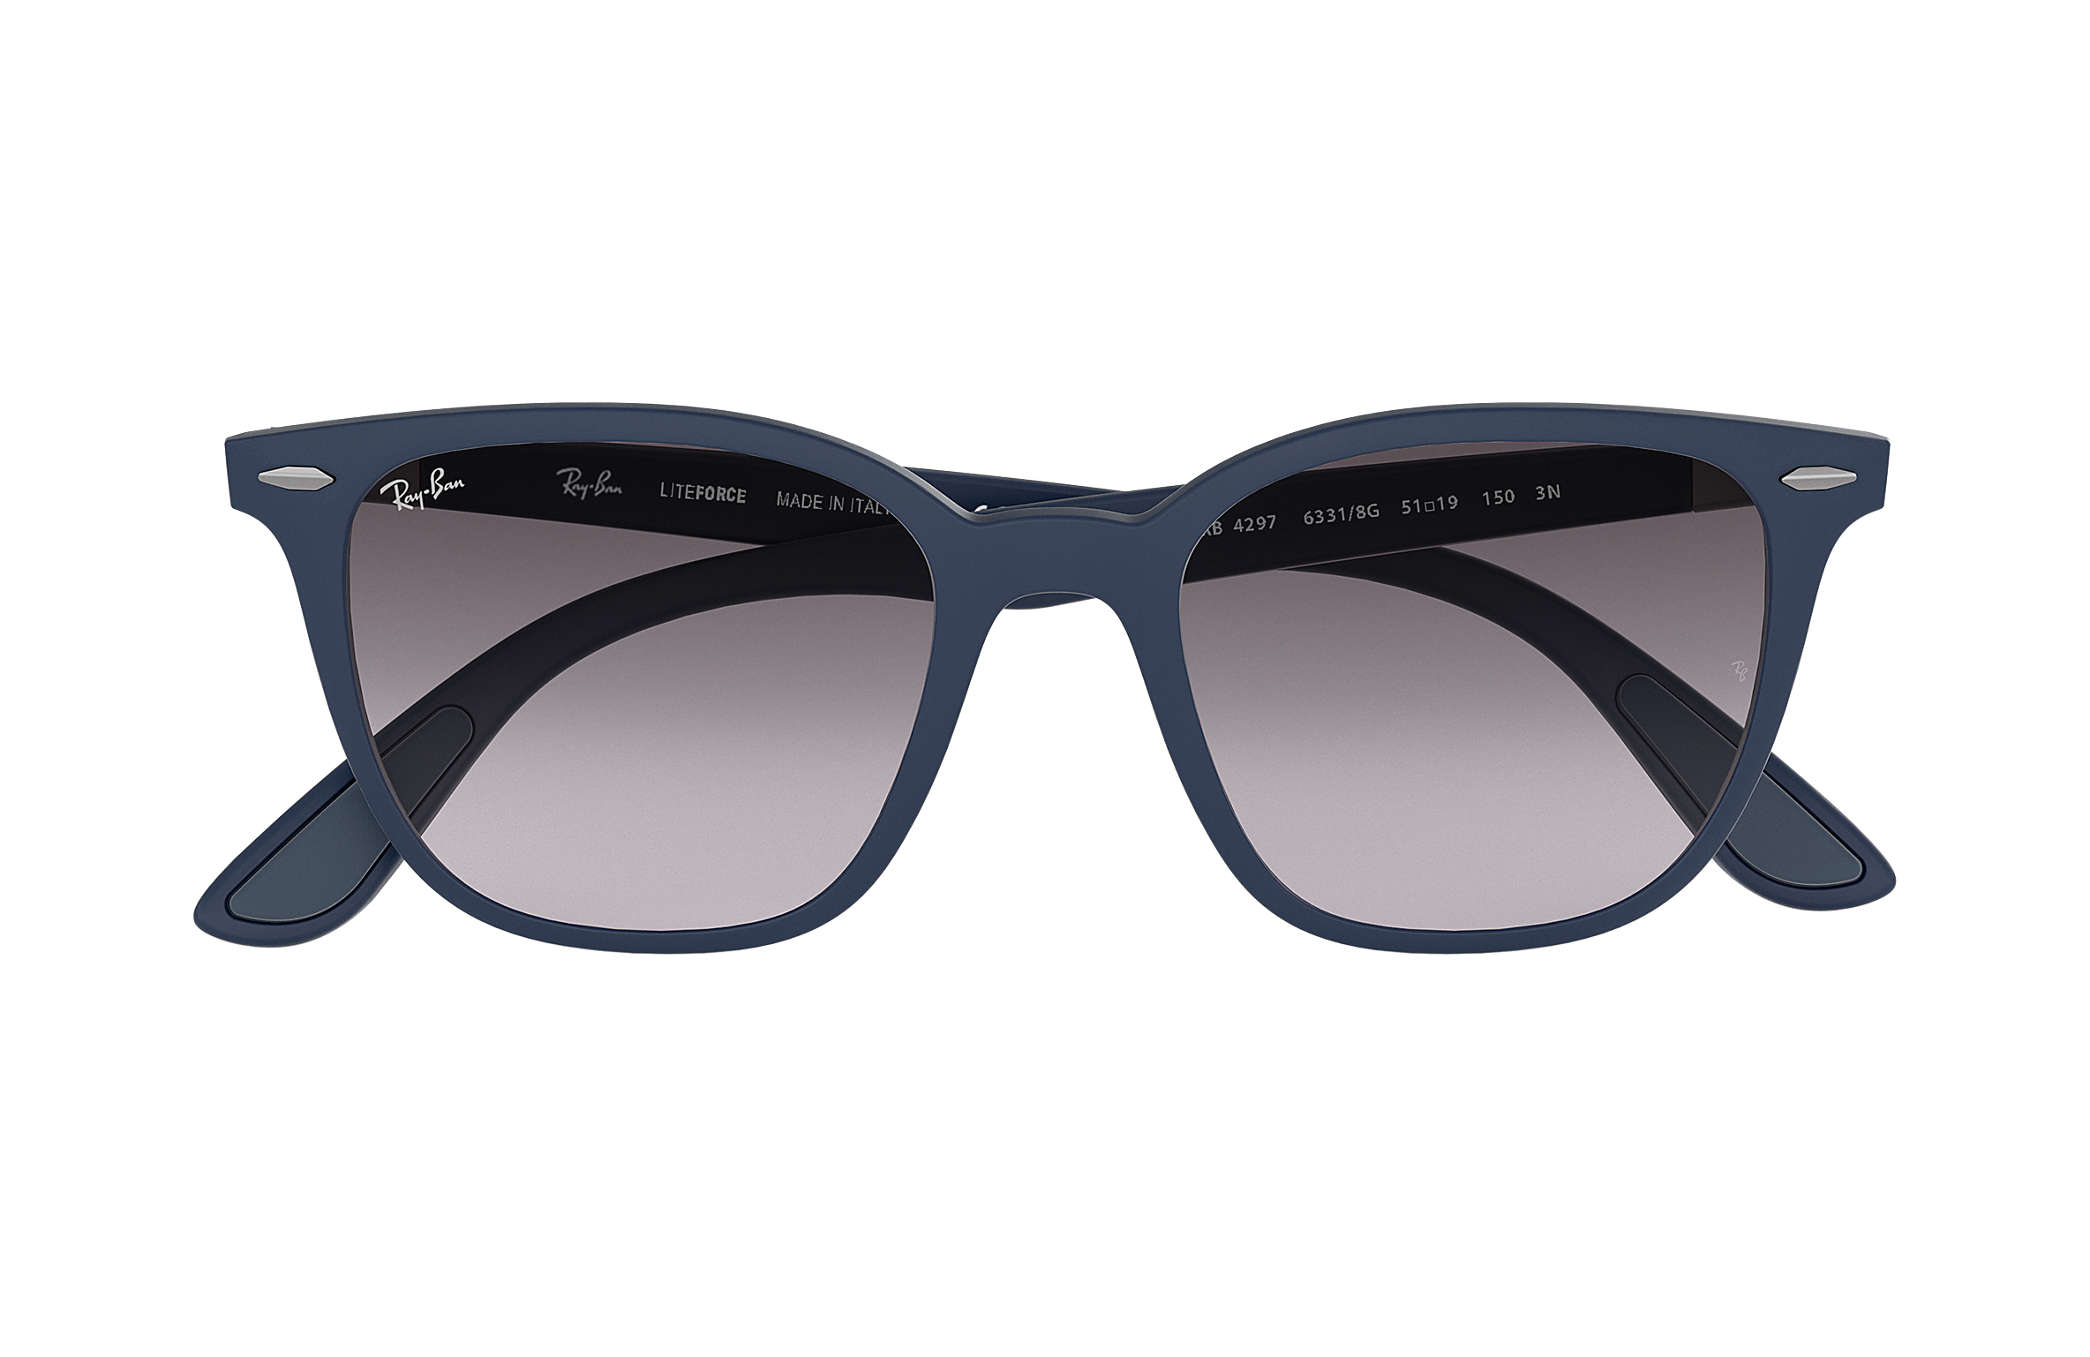 9d5d504e27 Ray-Ban RB4297 Blue - Peek - Grey Lenses - 0RB429763318G51